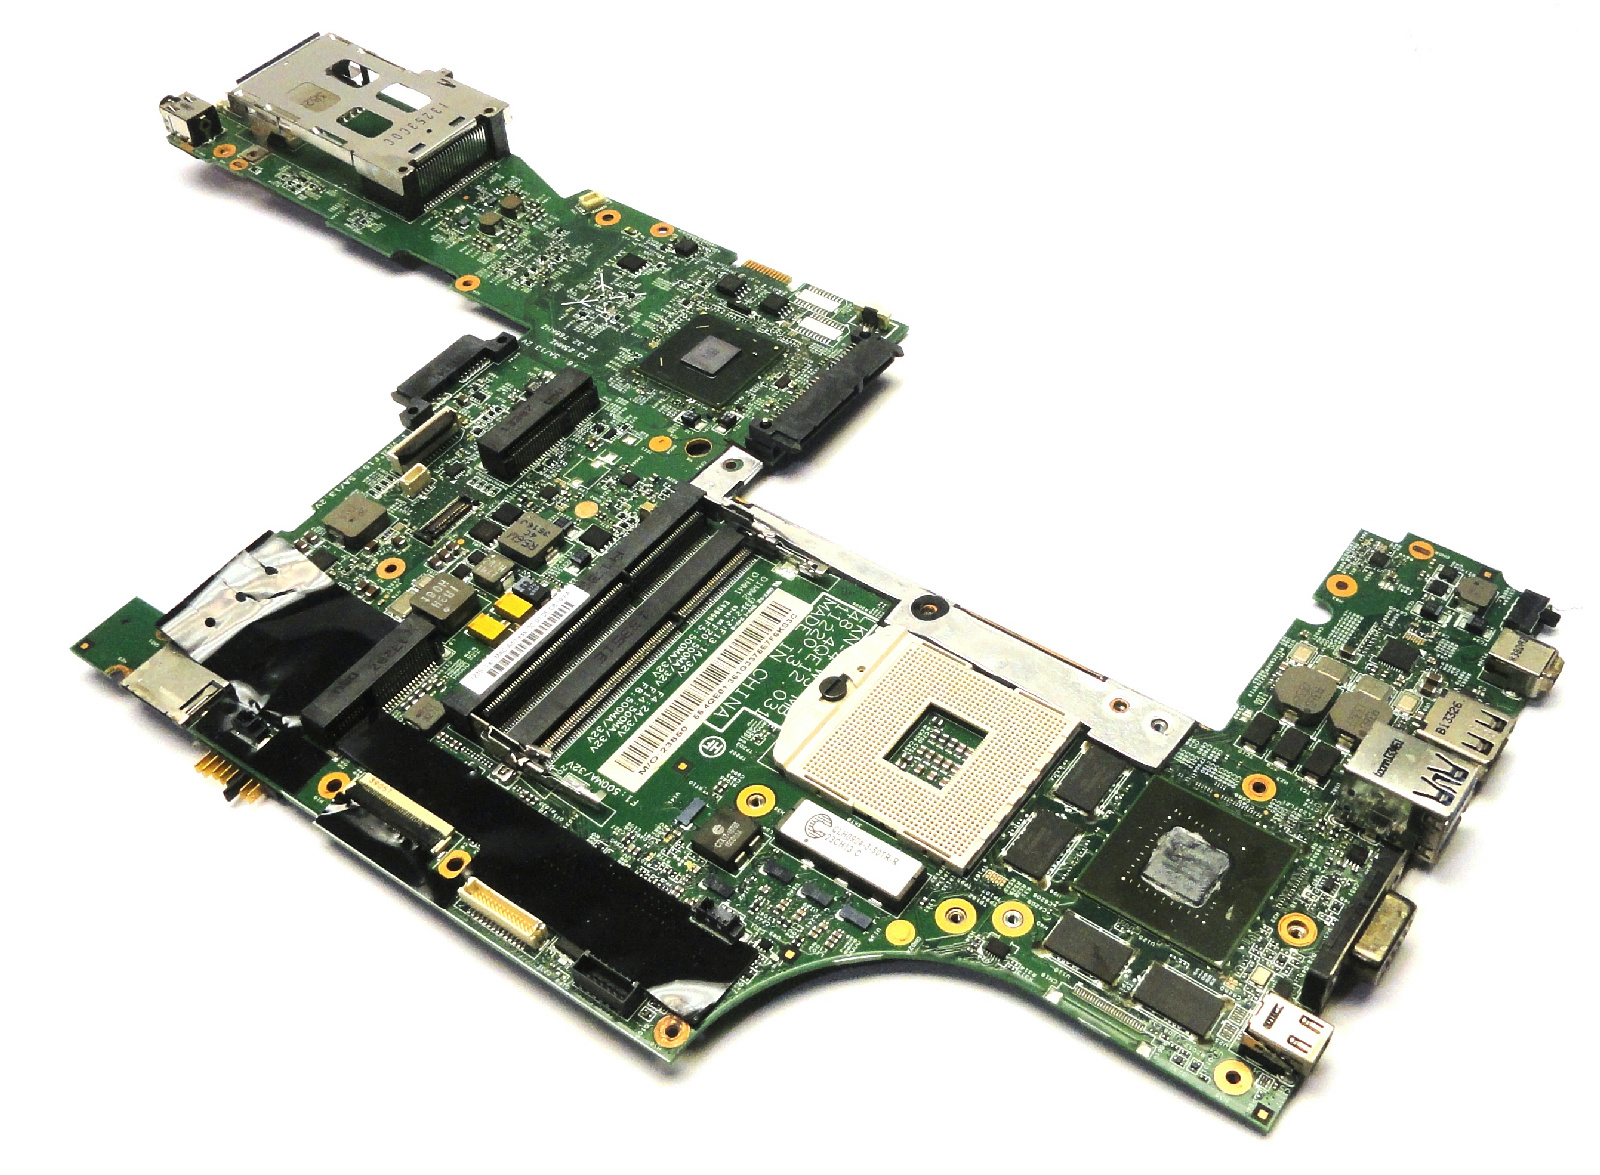 21x Lenovo Thinkpad Laptop Motherboard For T530 W530 W510